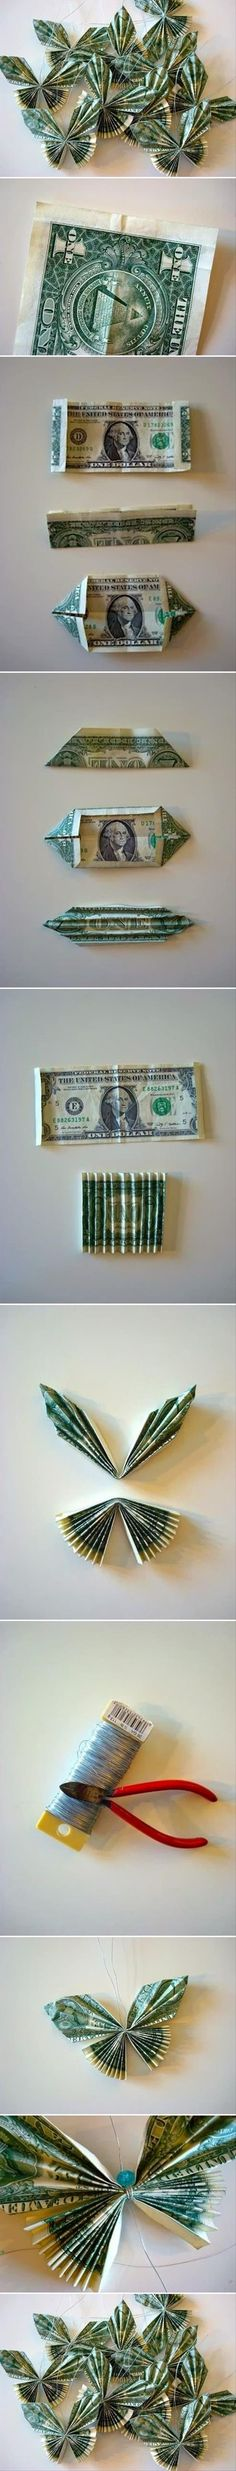 DIY Dollar Bill Butterfly - DIY Money Bill Butterfly – I don't know if I'. - DIY Dollar Bill Butterfly – DIY Money Bill Butterfly – I don't know if I'd do them with money or pretty craft paper but I like the look! Money Lei, Money Origami, Origami Paper, Diy Origami, Origami Tutorial, Origami Boxes, Dollar Origami, Origami Instructions, Diy Tutorial